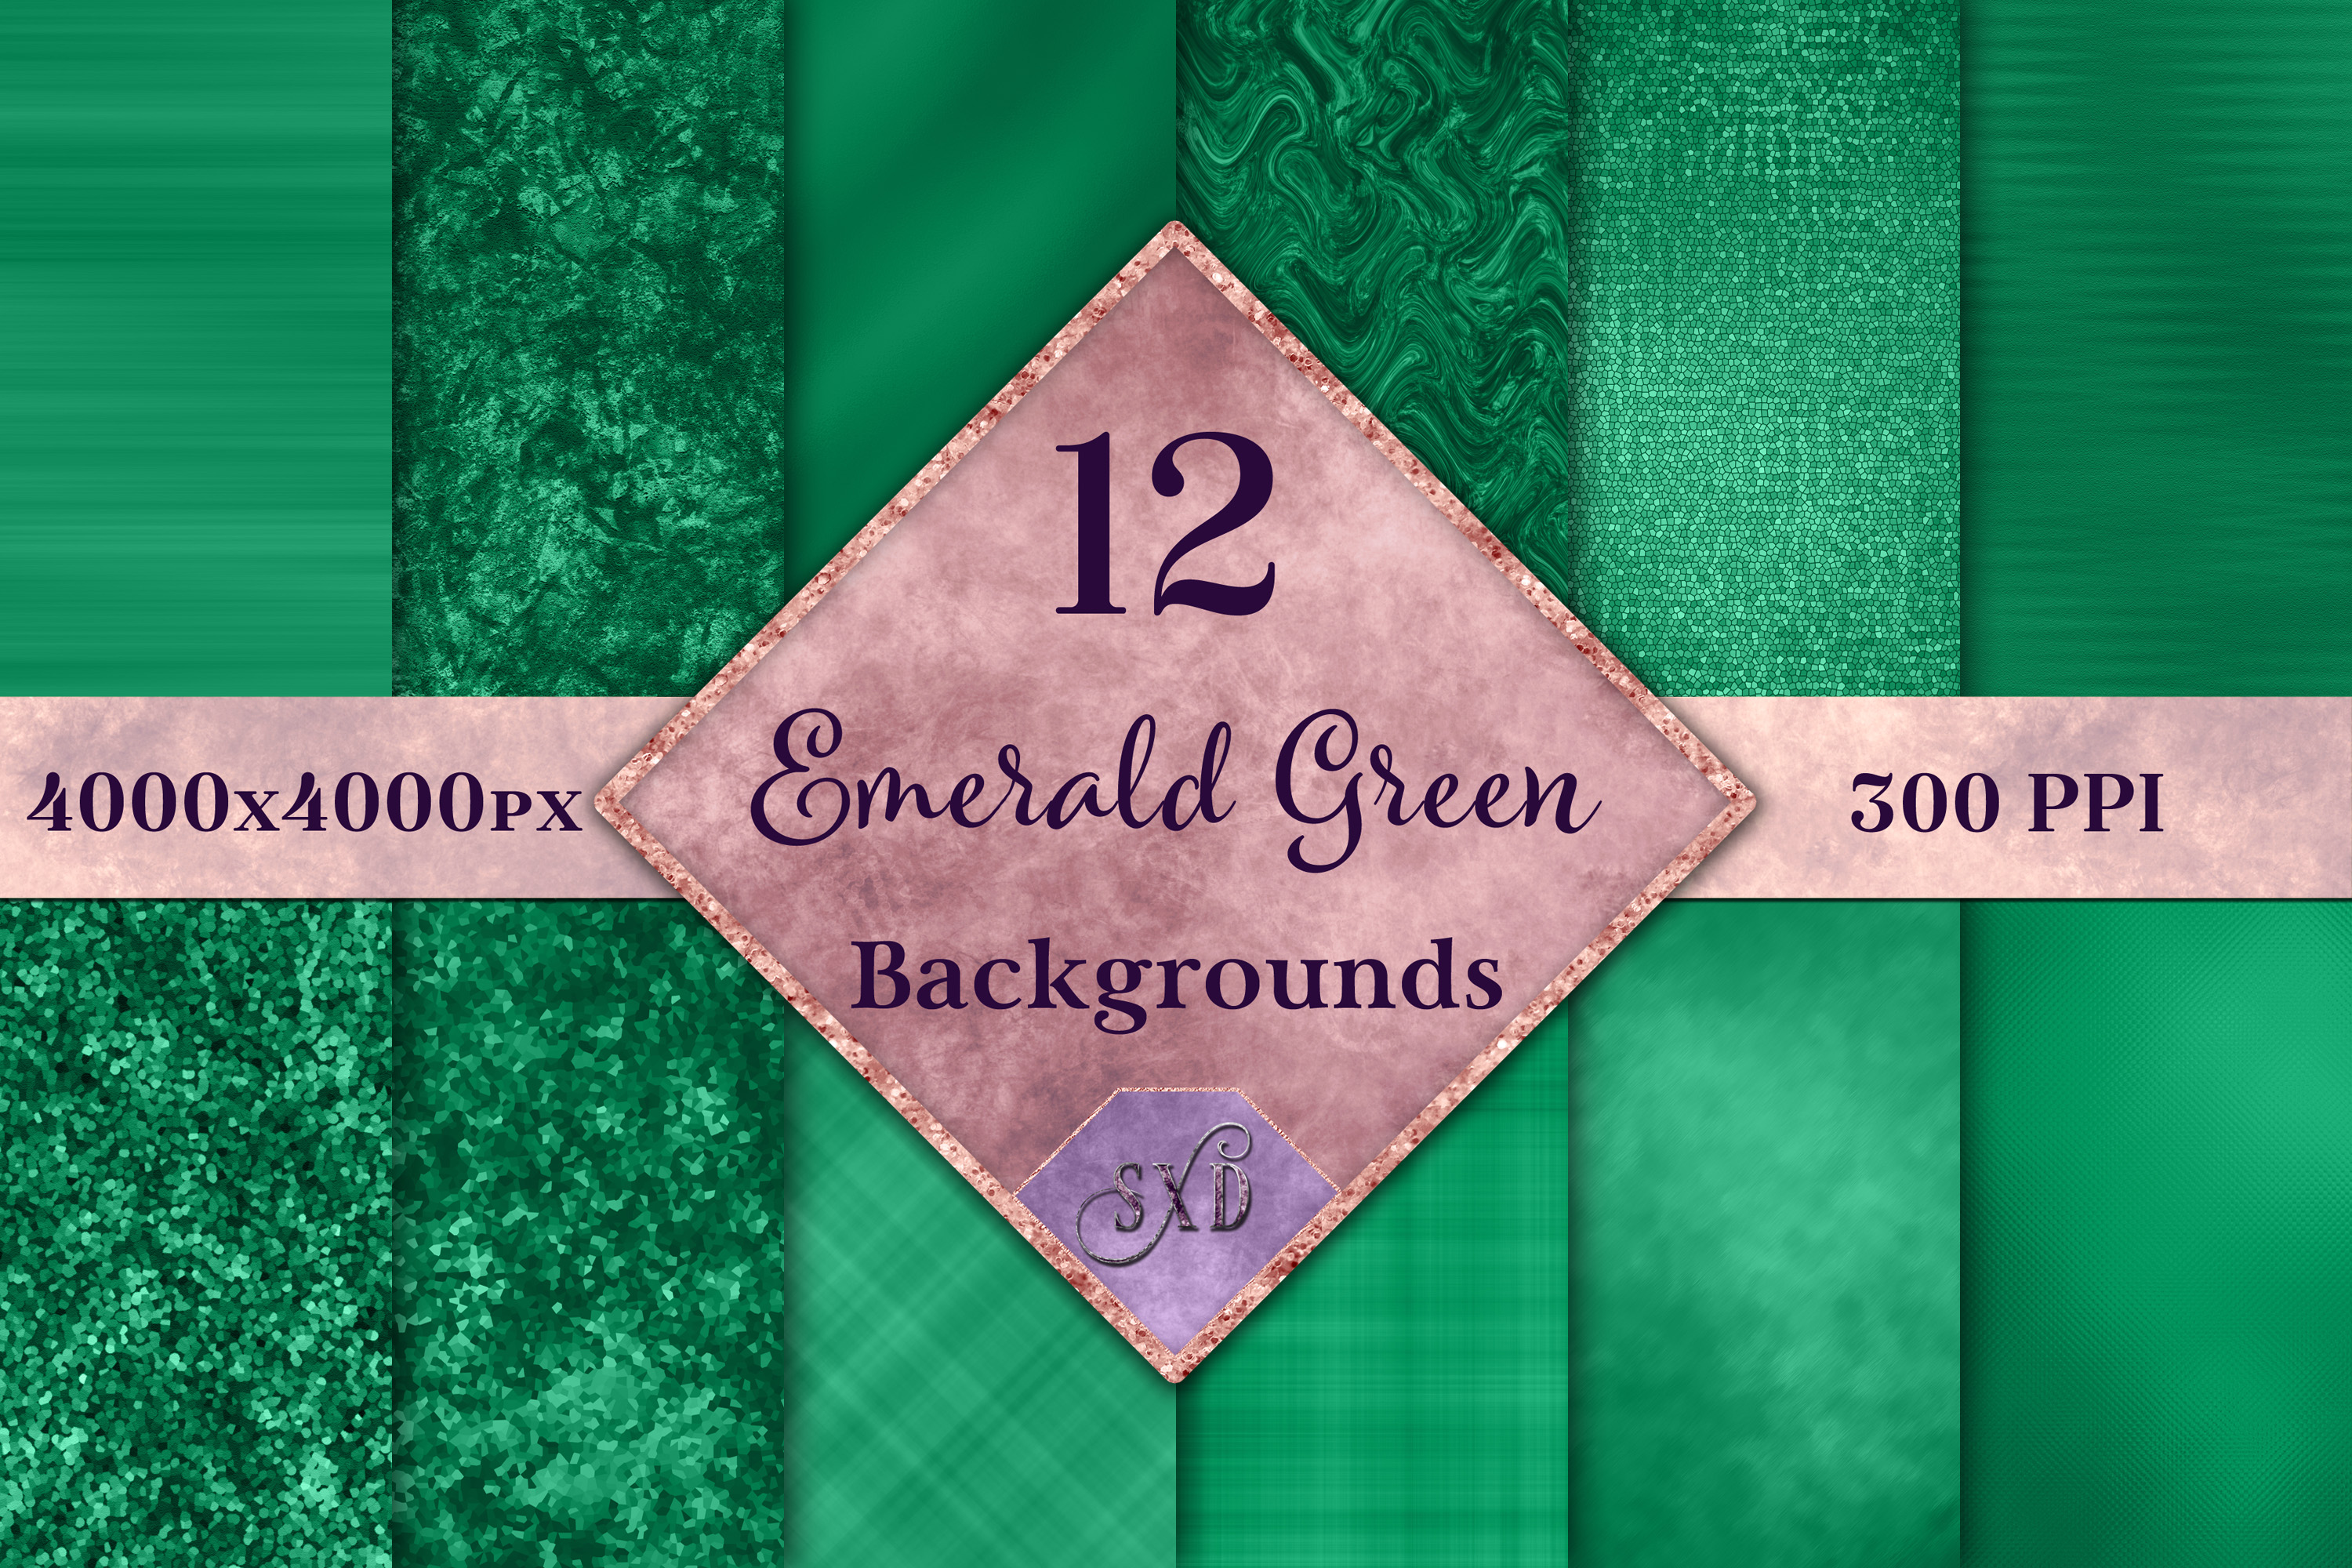 Emerald Green Backgrounds - 12 Image Textures Set example image 1